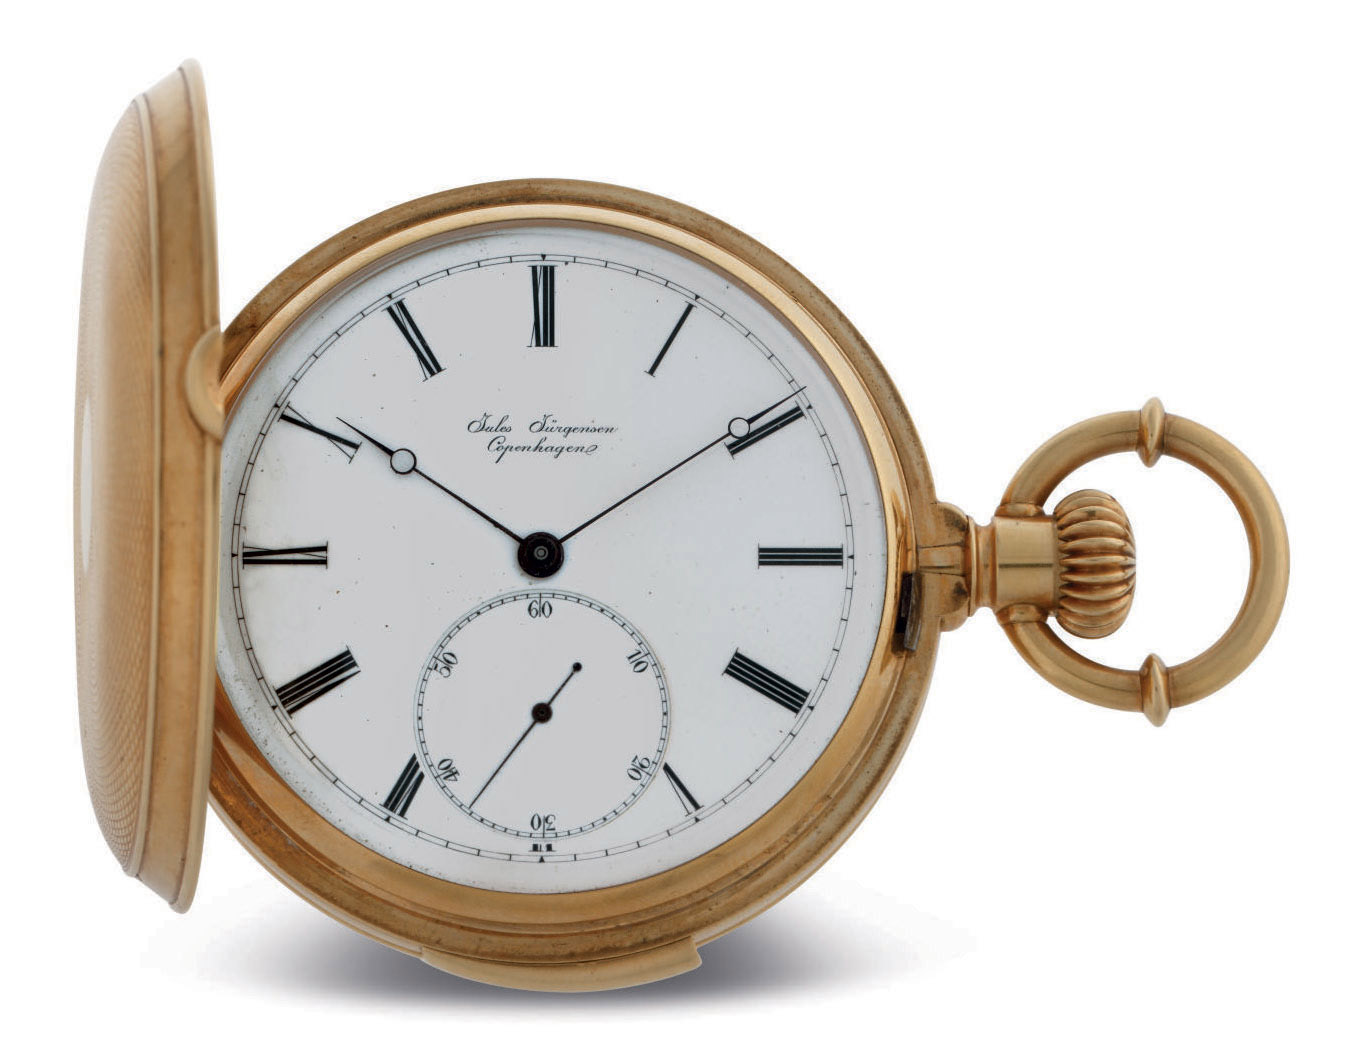 JULES JÜRGENSEN. AN 18K GOLD HUNTER CASE MINUTE REPEATING KEYLESS LEVER POCKET WATCH WITH PATENTED BOW SETTING